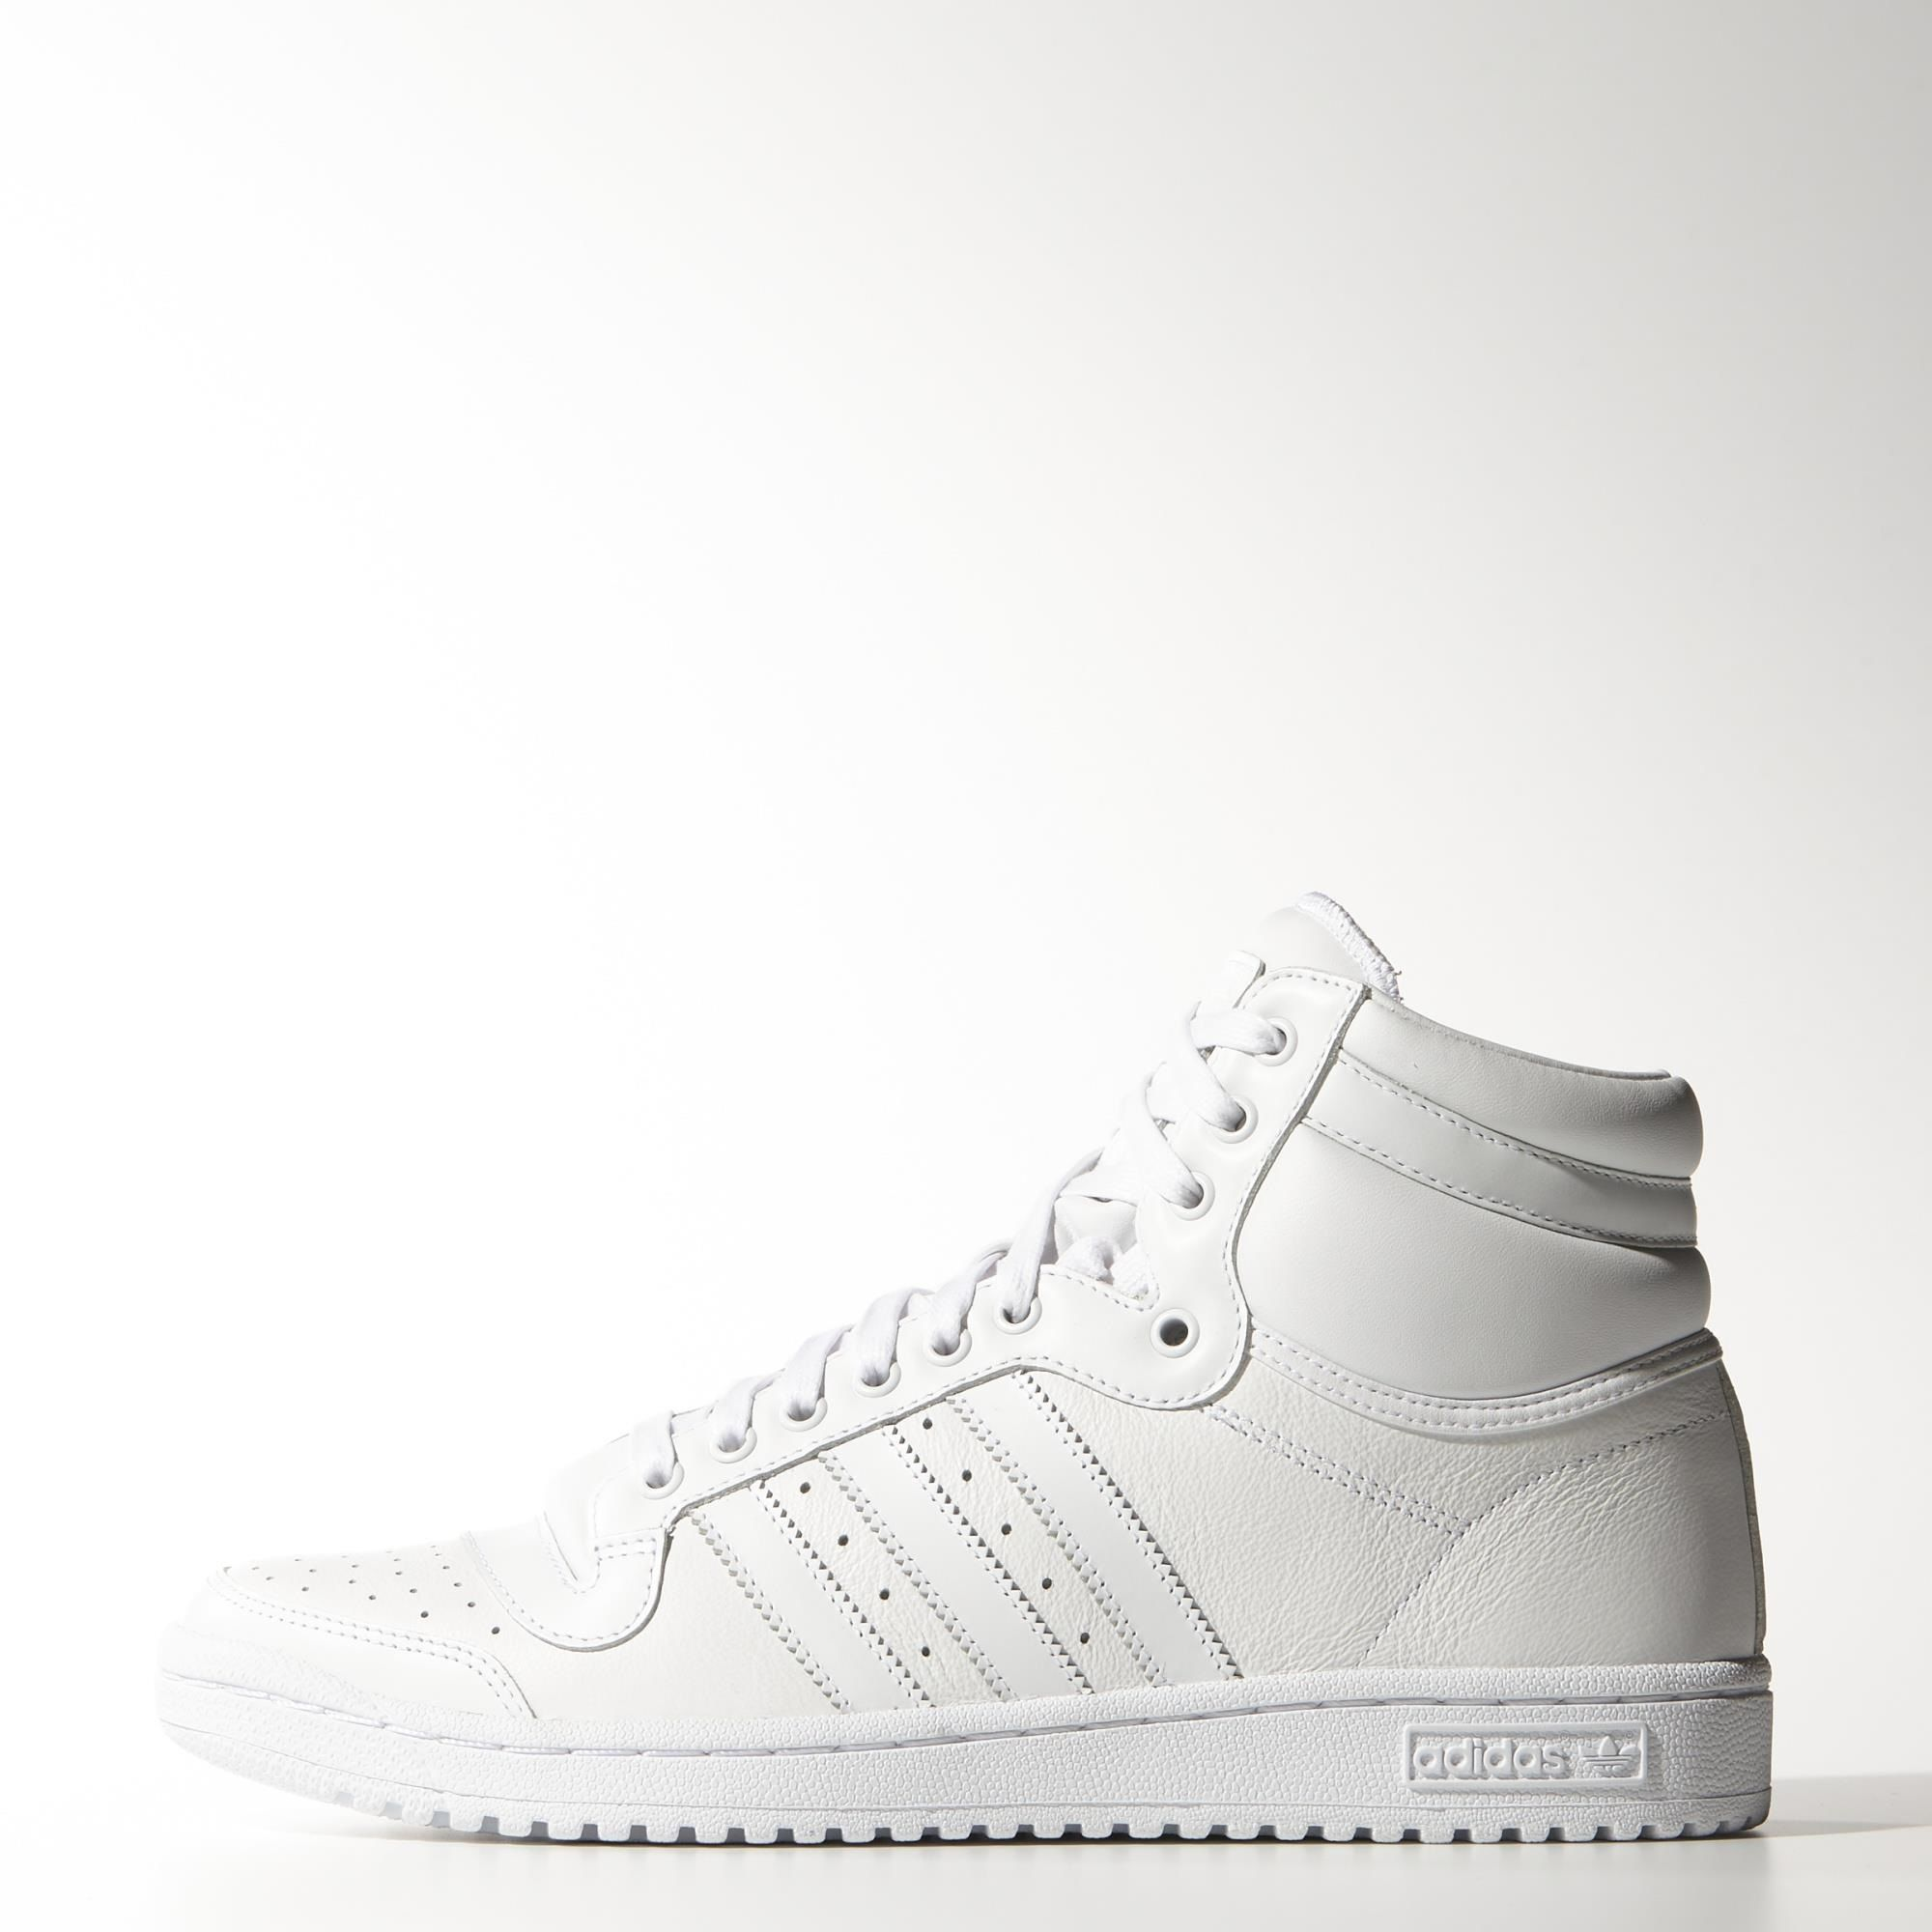 6c5b81ecb3941 adidas Top Ten Hi Shoes - White